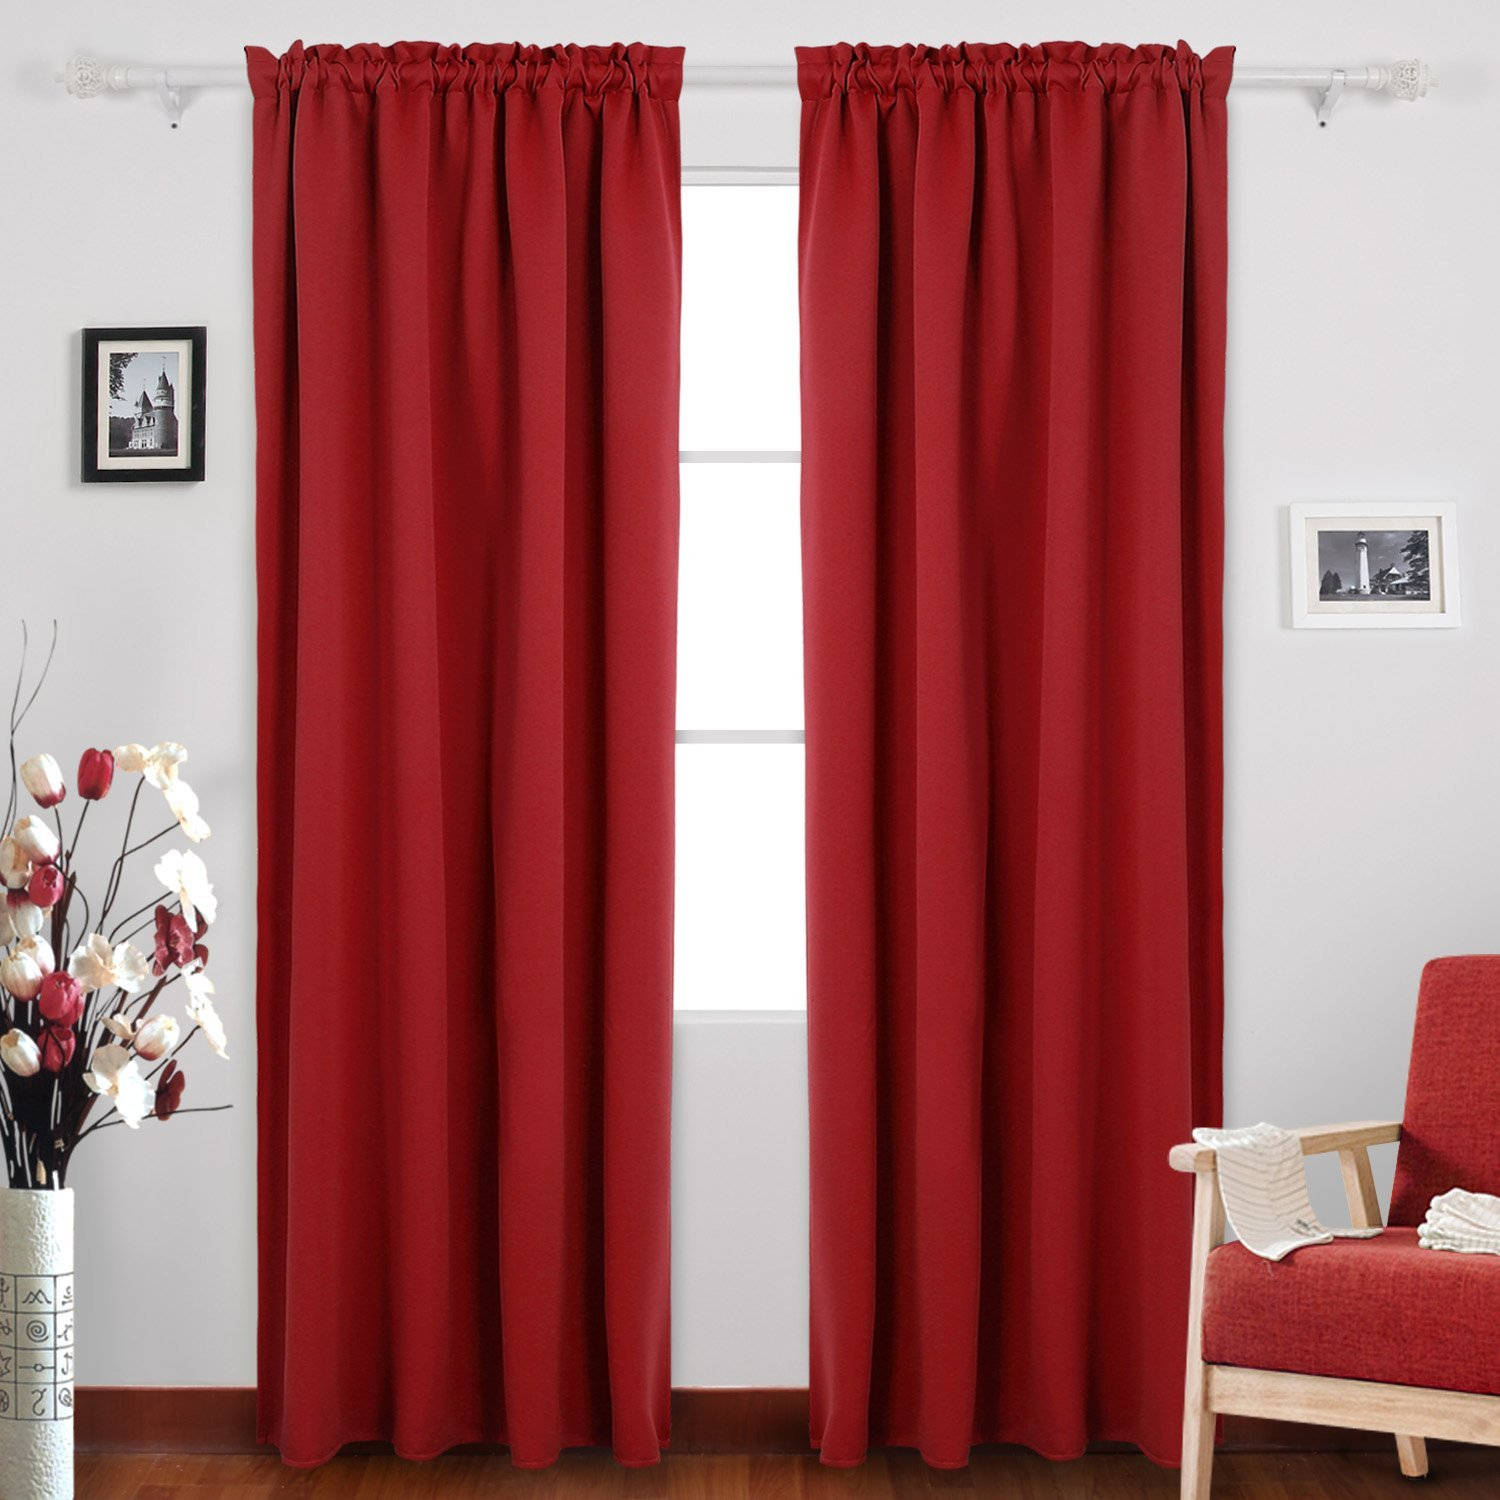 36 Inch Room Darkening Curtains Cheap Long Red Curtains Find Long Red Curtains Deals On Line At